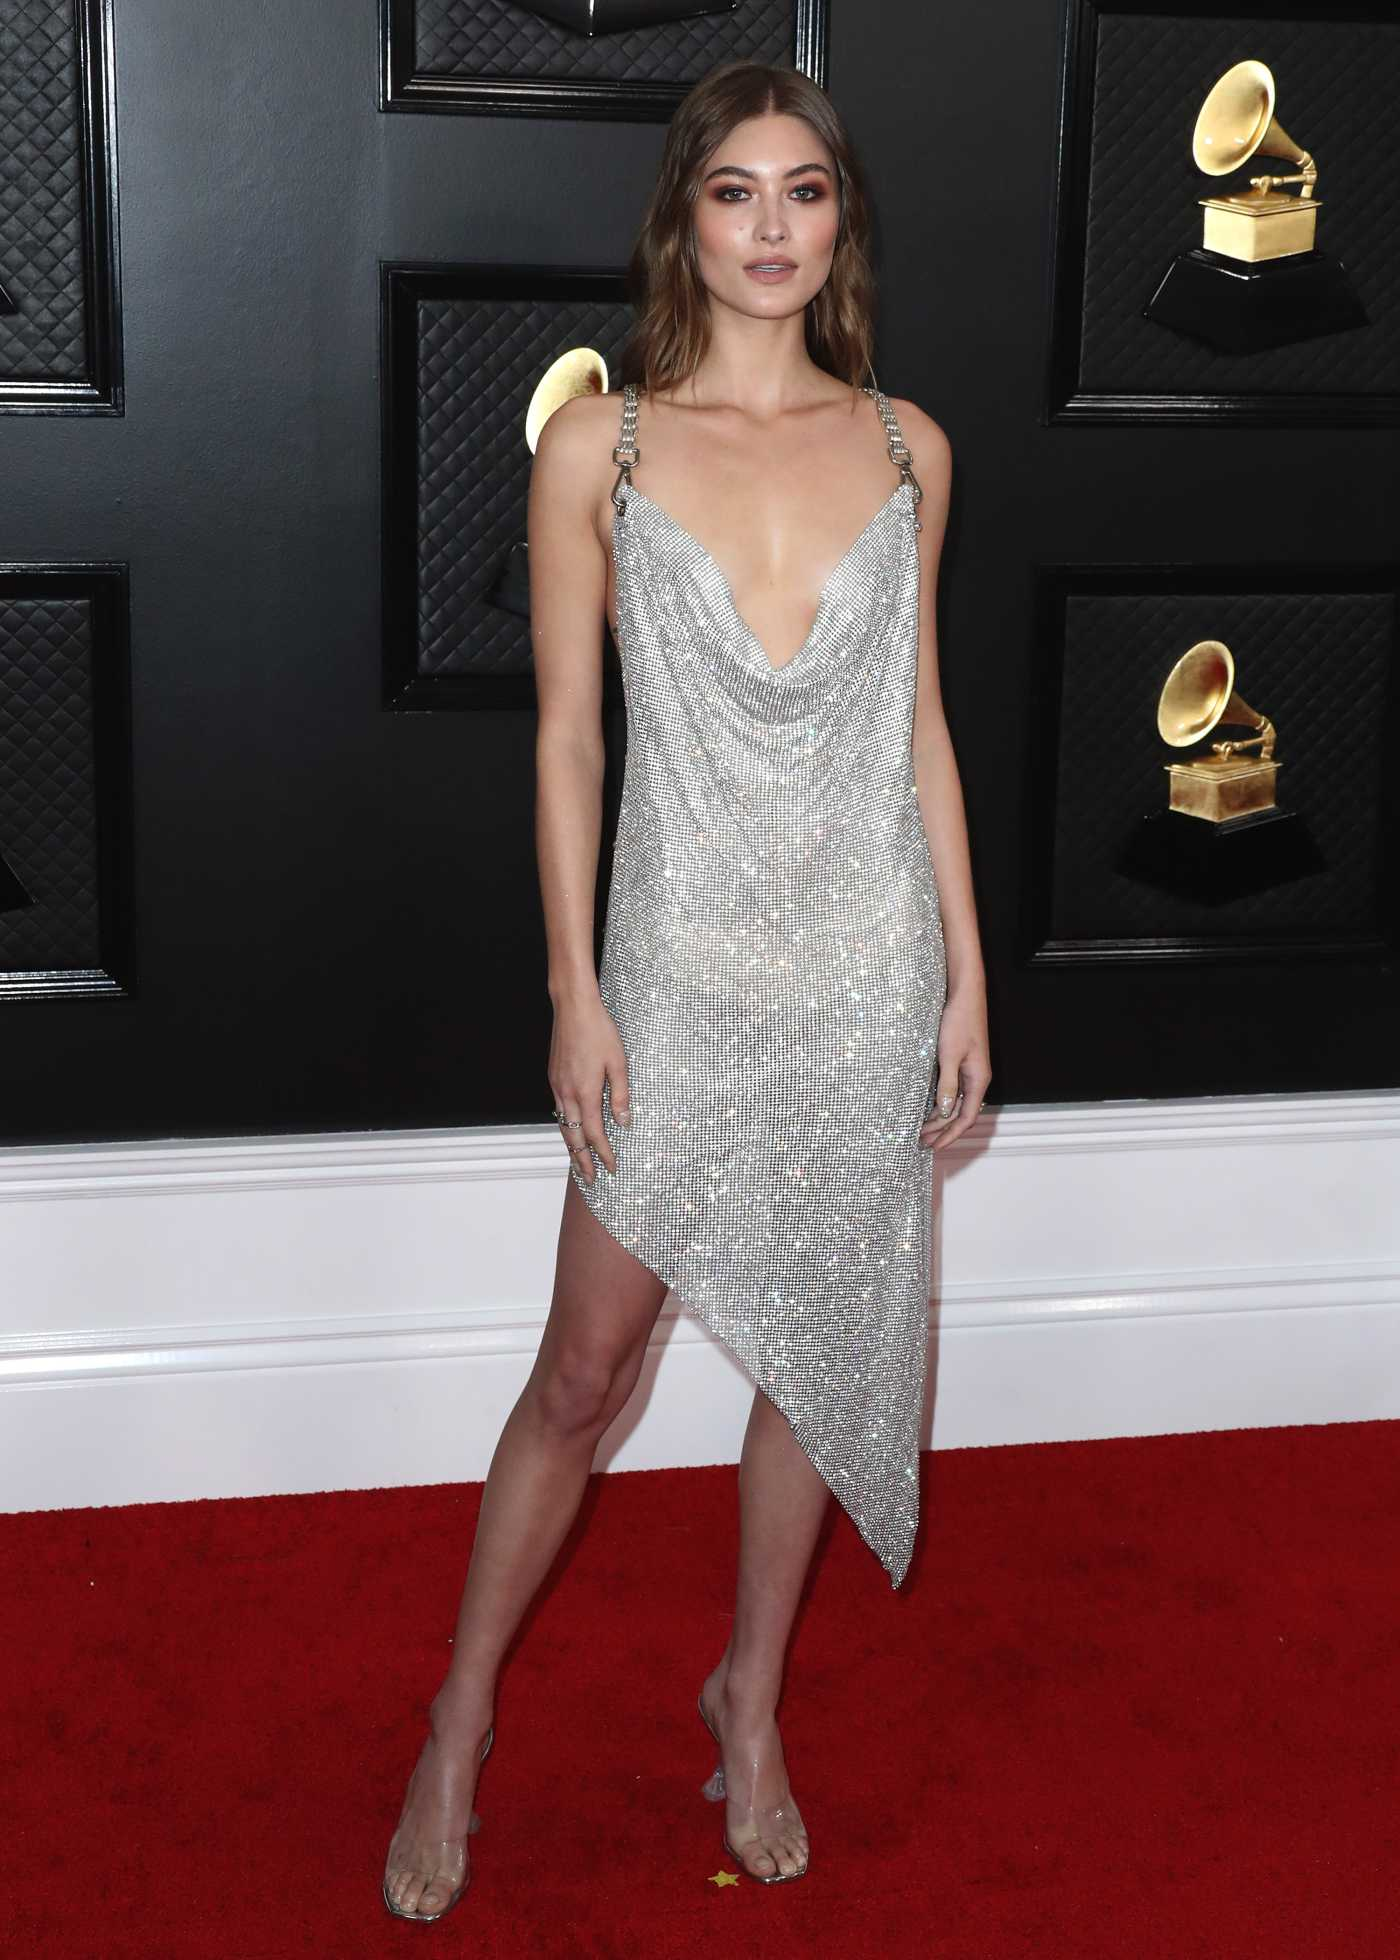 Grace Elizabeth Attends the 62nd Annual Grammy Awards at Staples Center in Los Angeles 01/26/2020